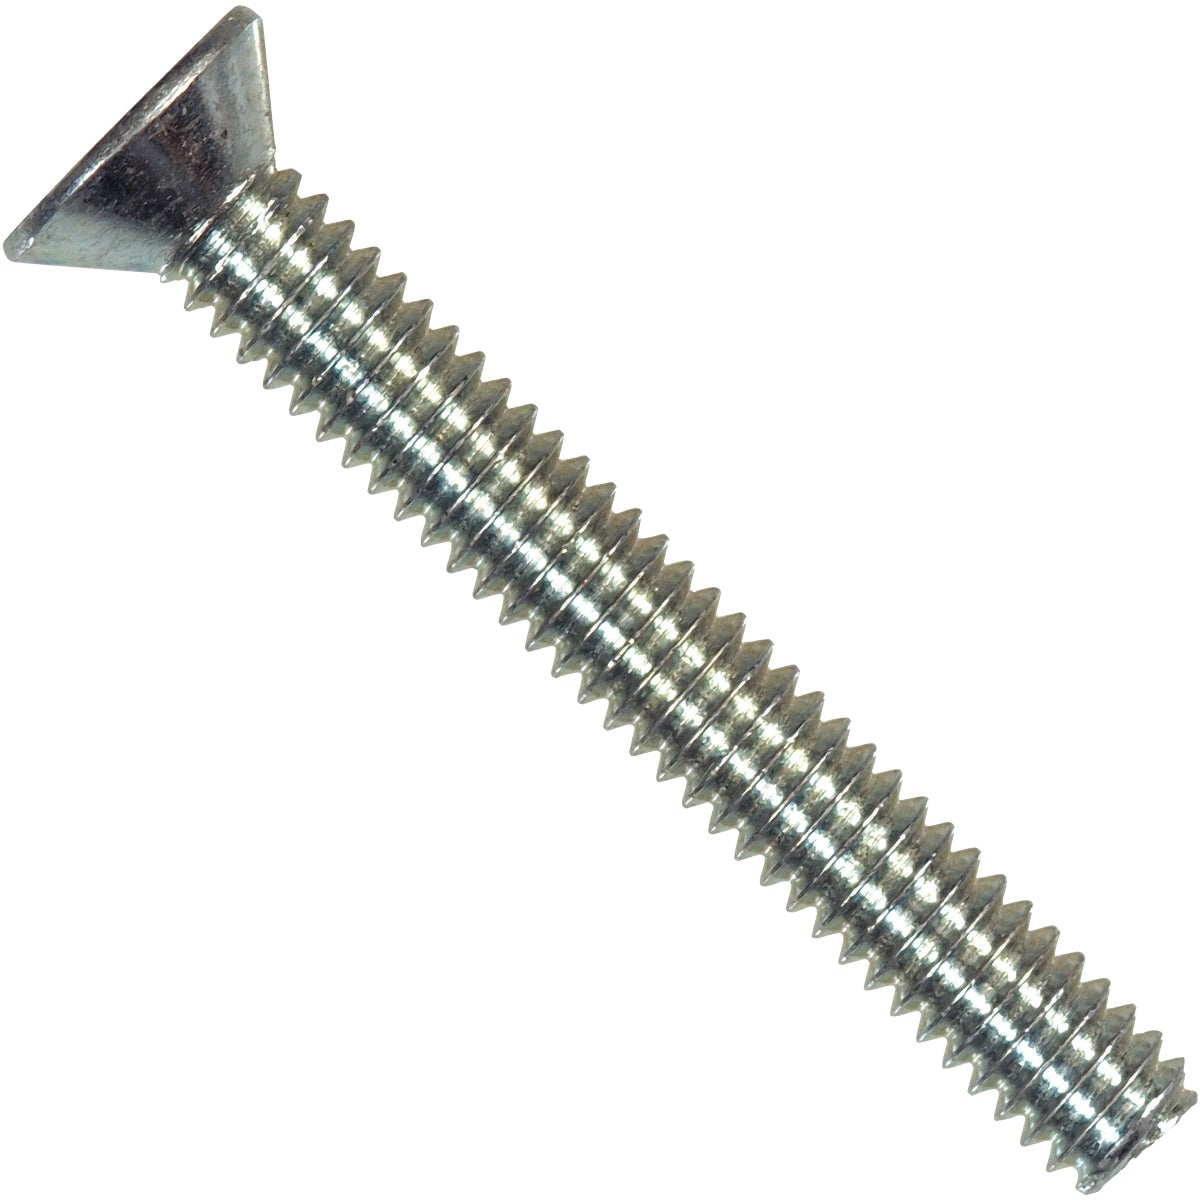 1/4-20X1 P FH MACH SCREW - 101139 by Hillman Fastener